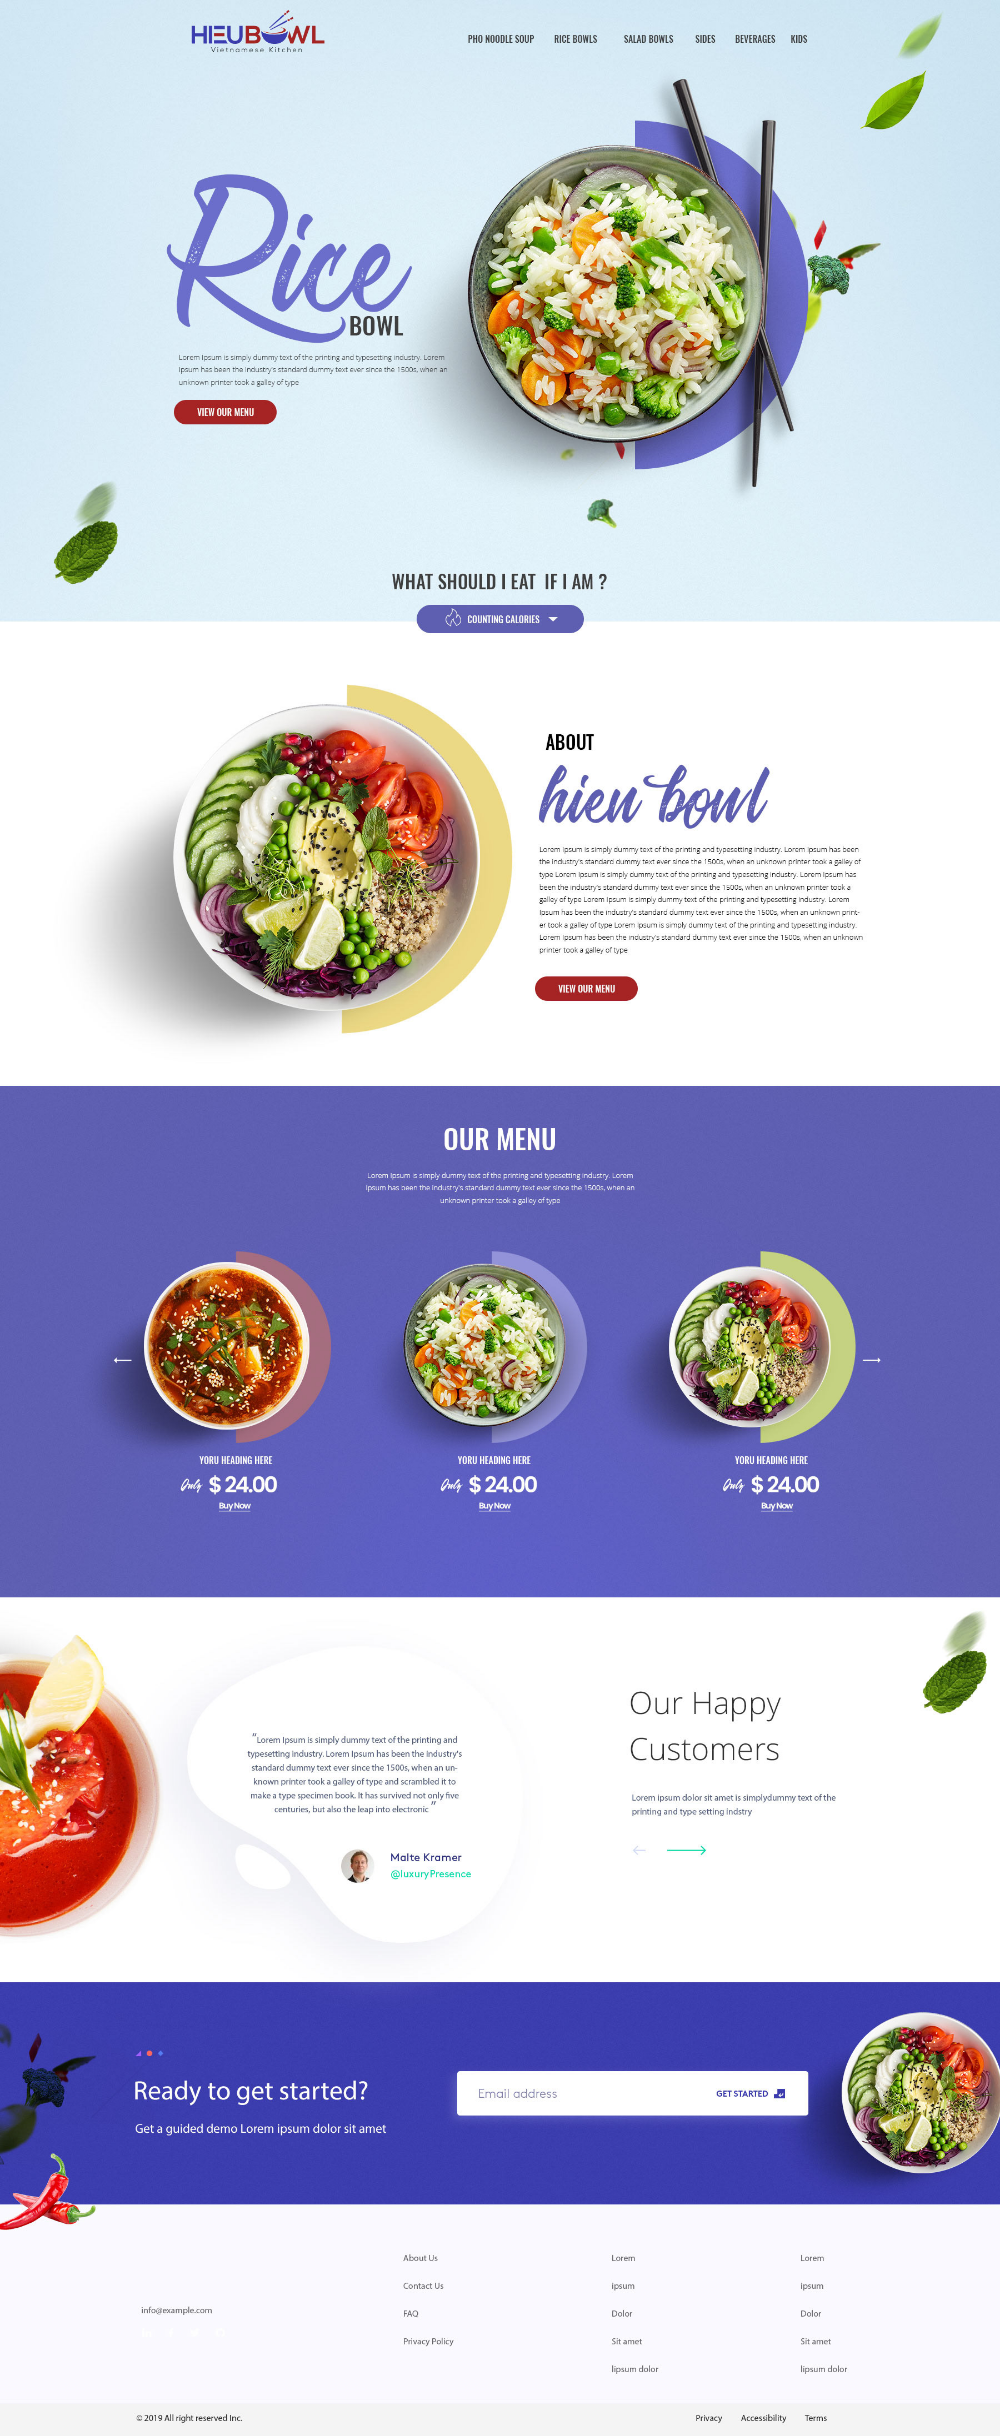 HieuBowl Web design